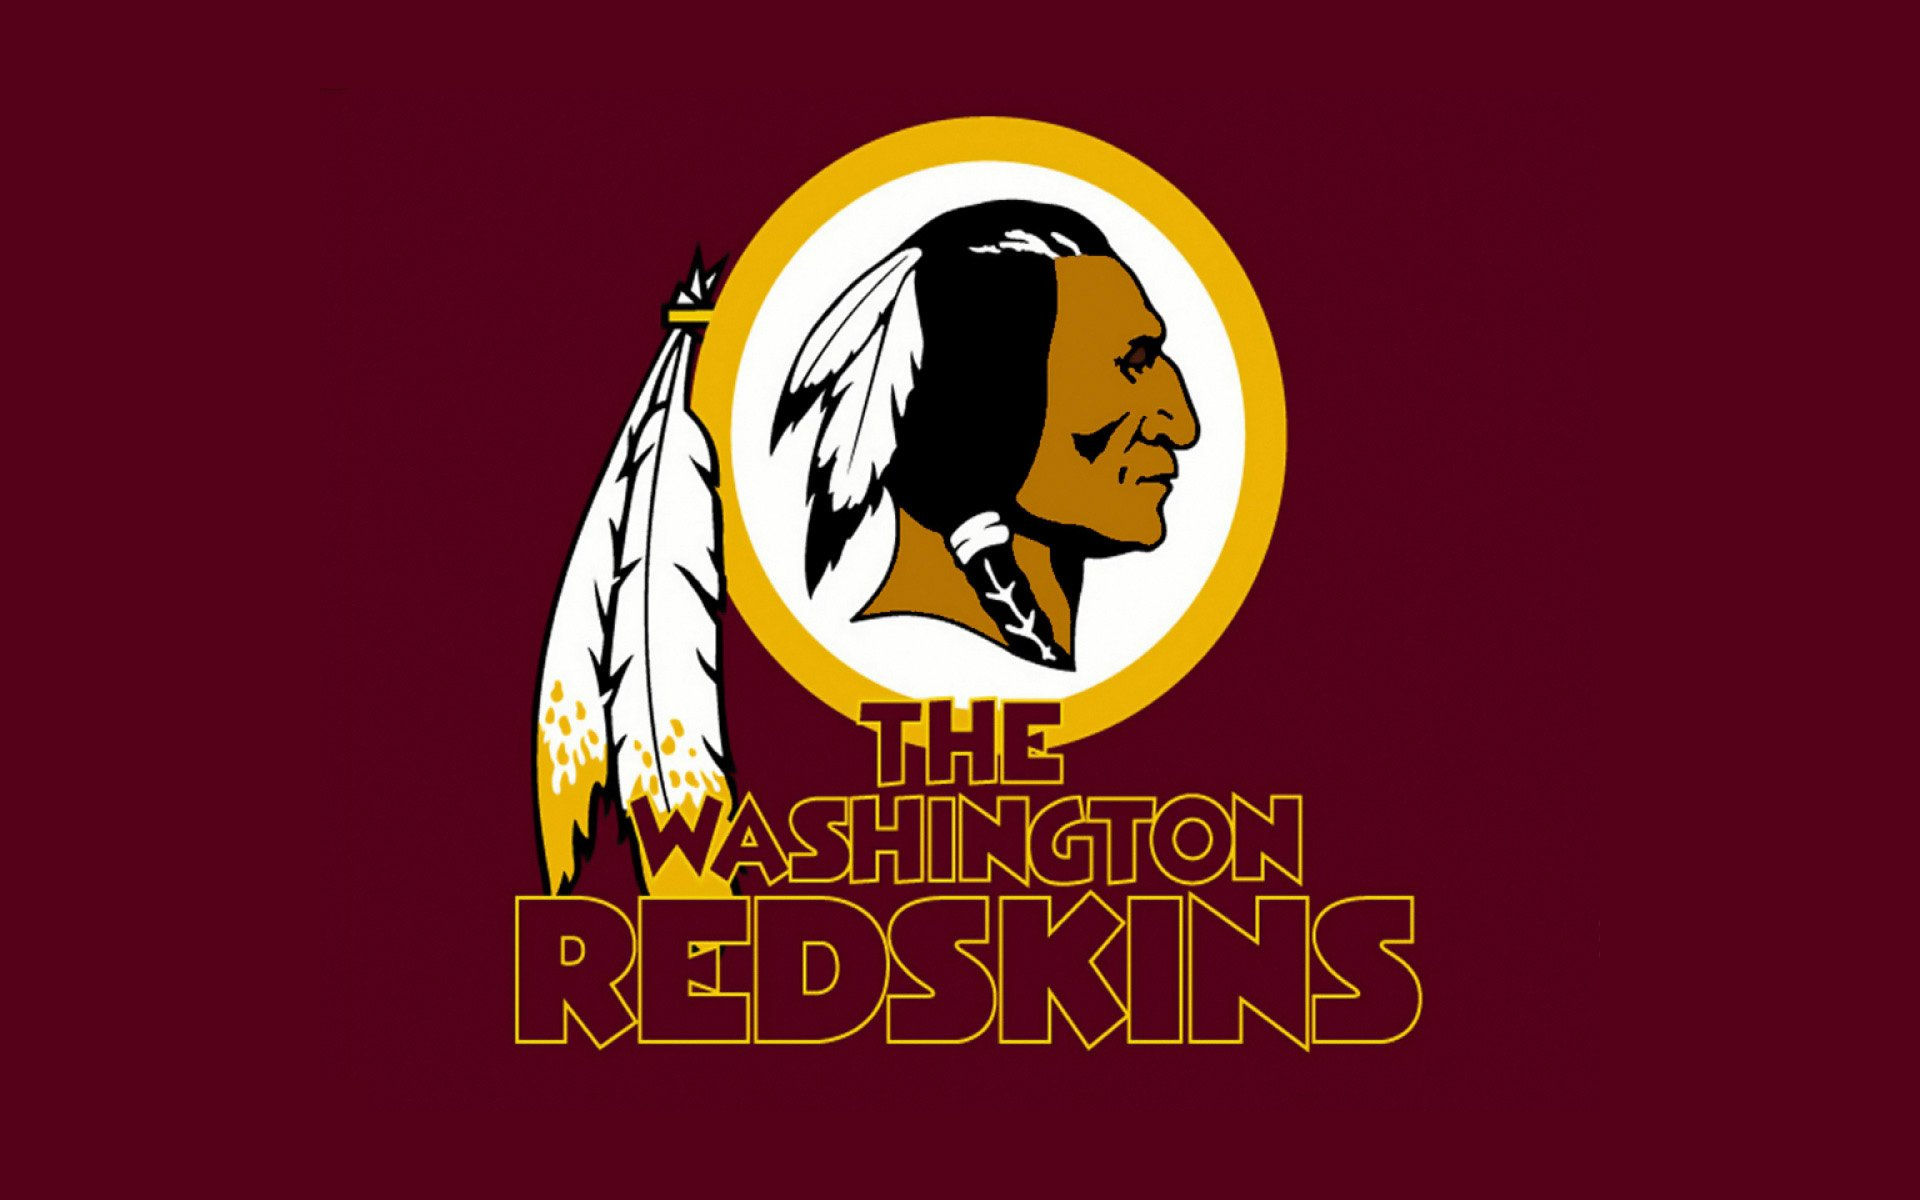 Washington Redskins Nfl 1920x1200 Wide Images 1920x1200